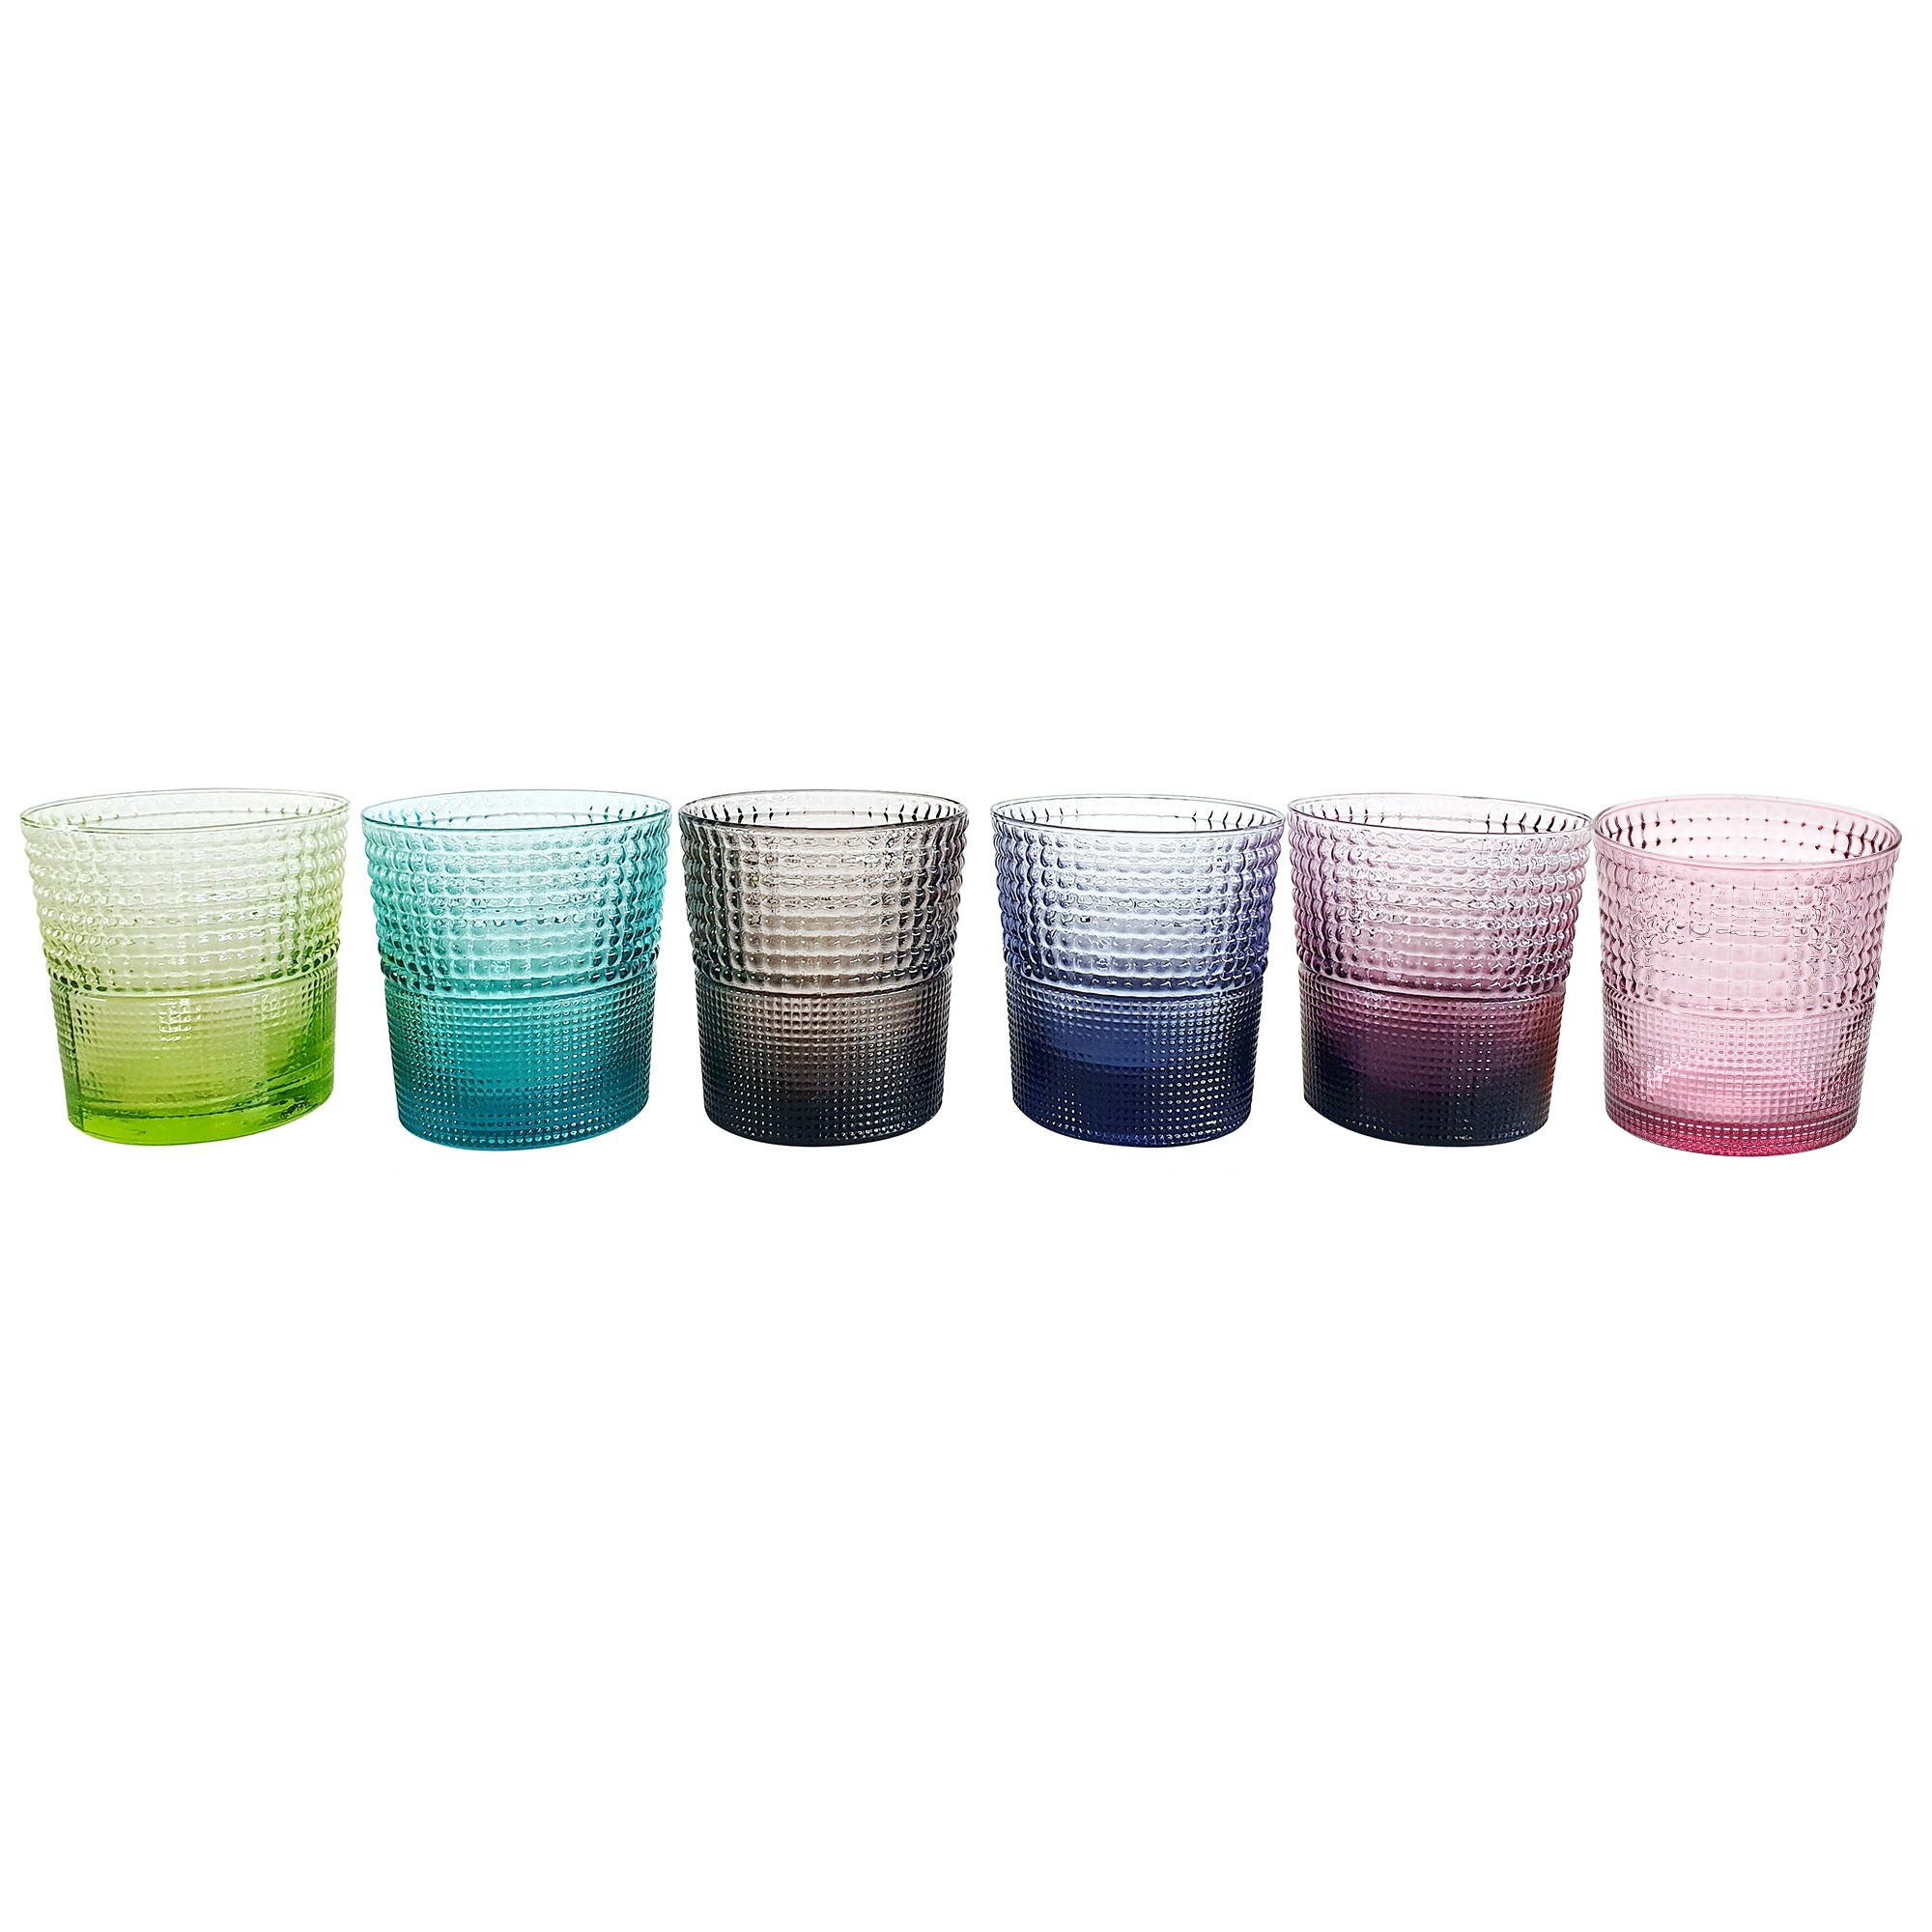 IVV Speedy 6 Piece Assorted Glass Tumblers